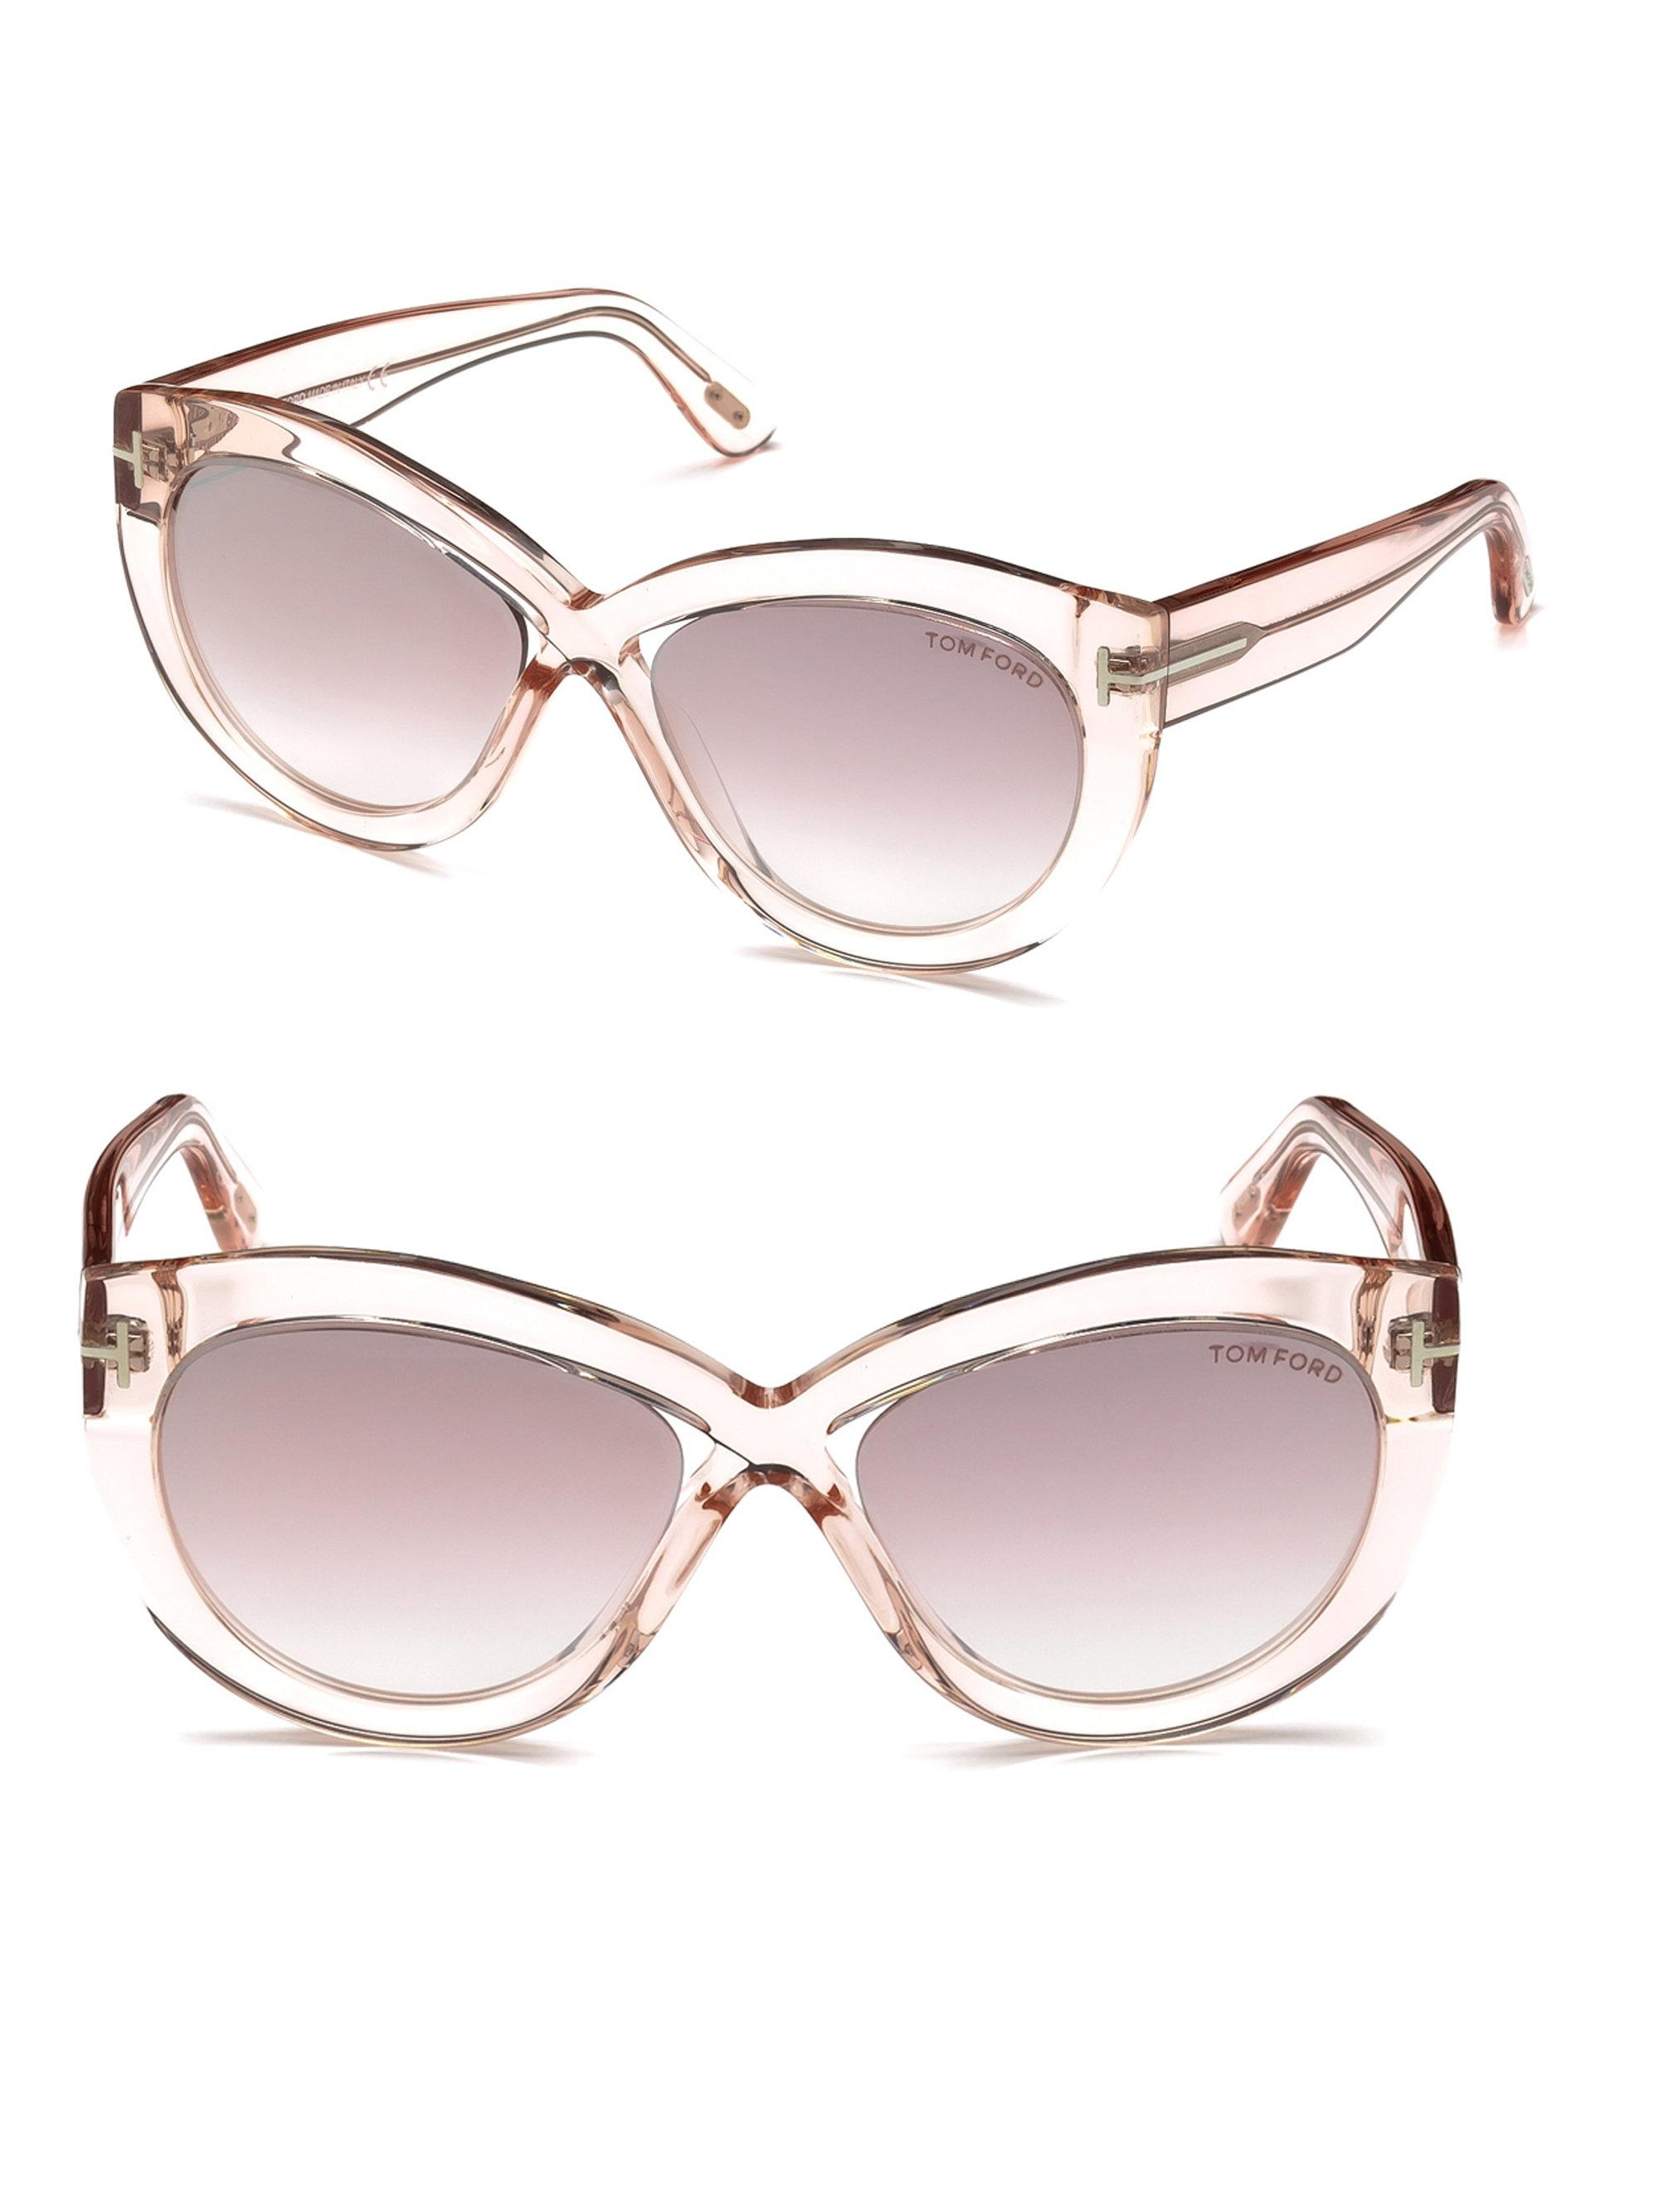 e2e6ca0b0c Tom Ford Diane 56mm Cate Eye Cross Front Sunglasses in Pink - Lyst